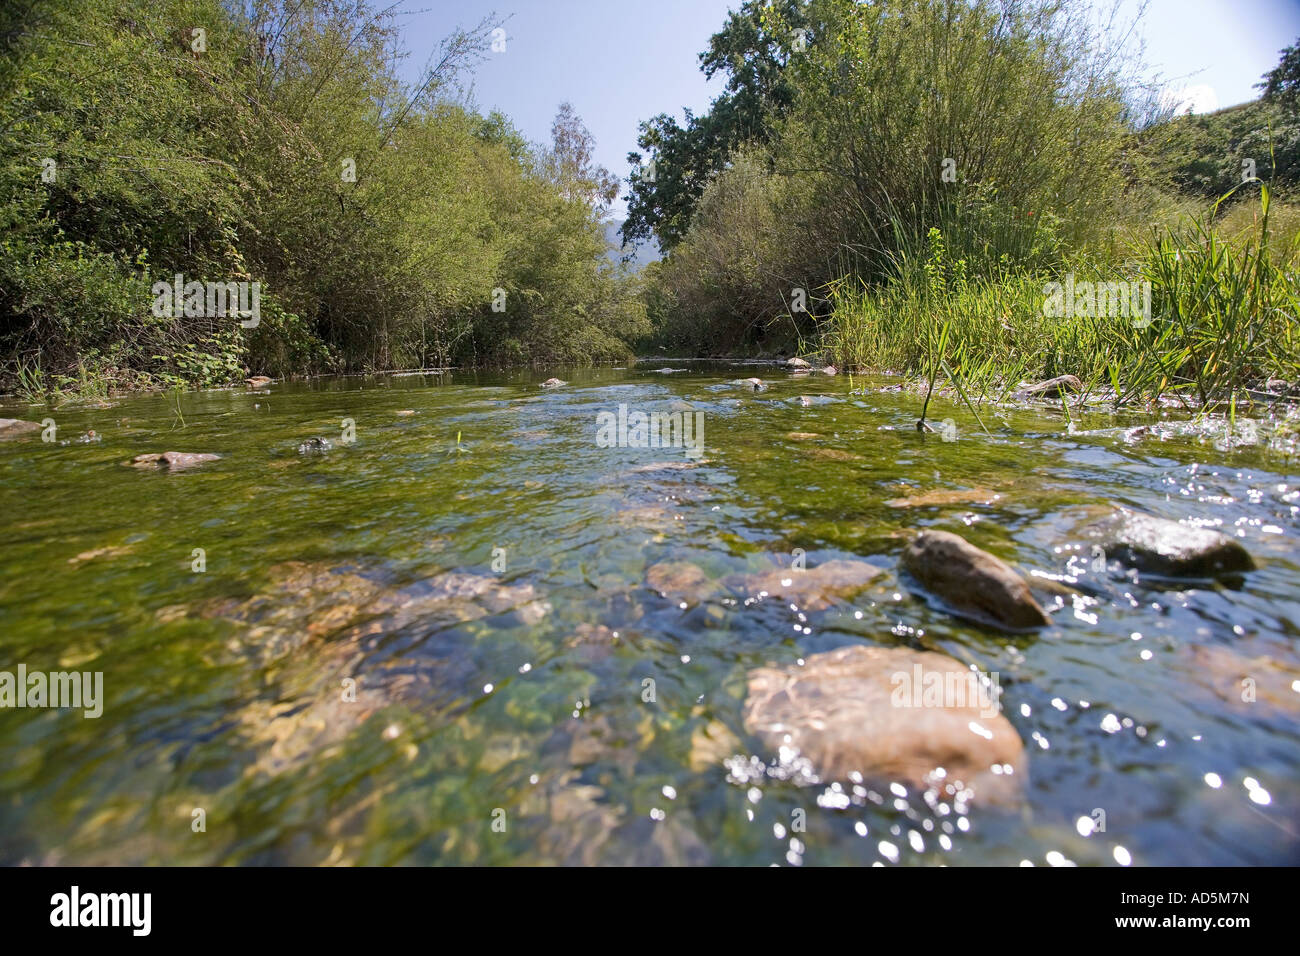 Exceptional Rocks In Spanish Part - 5: River Running Over Rocks In Spanish Countryside